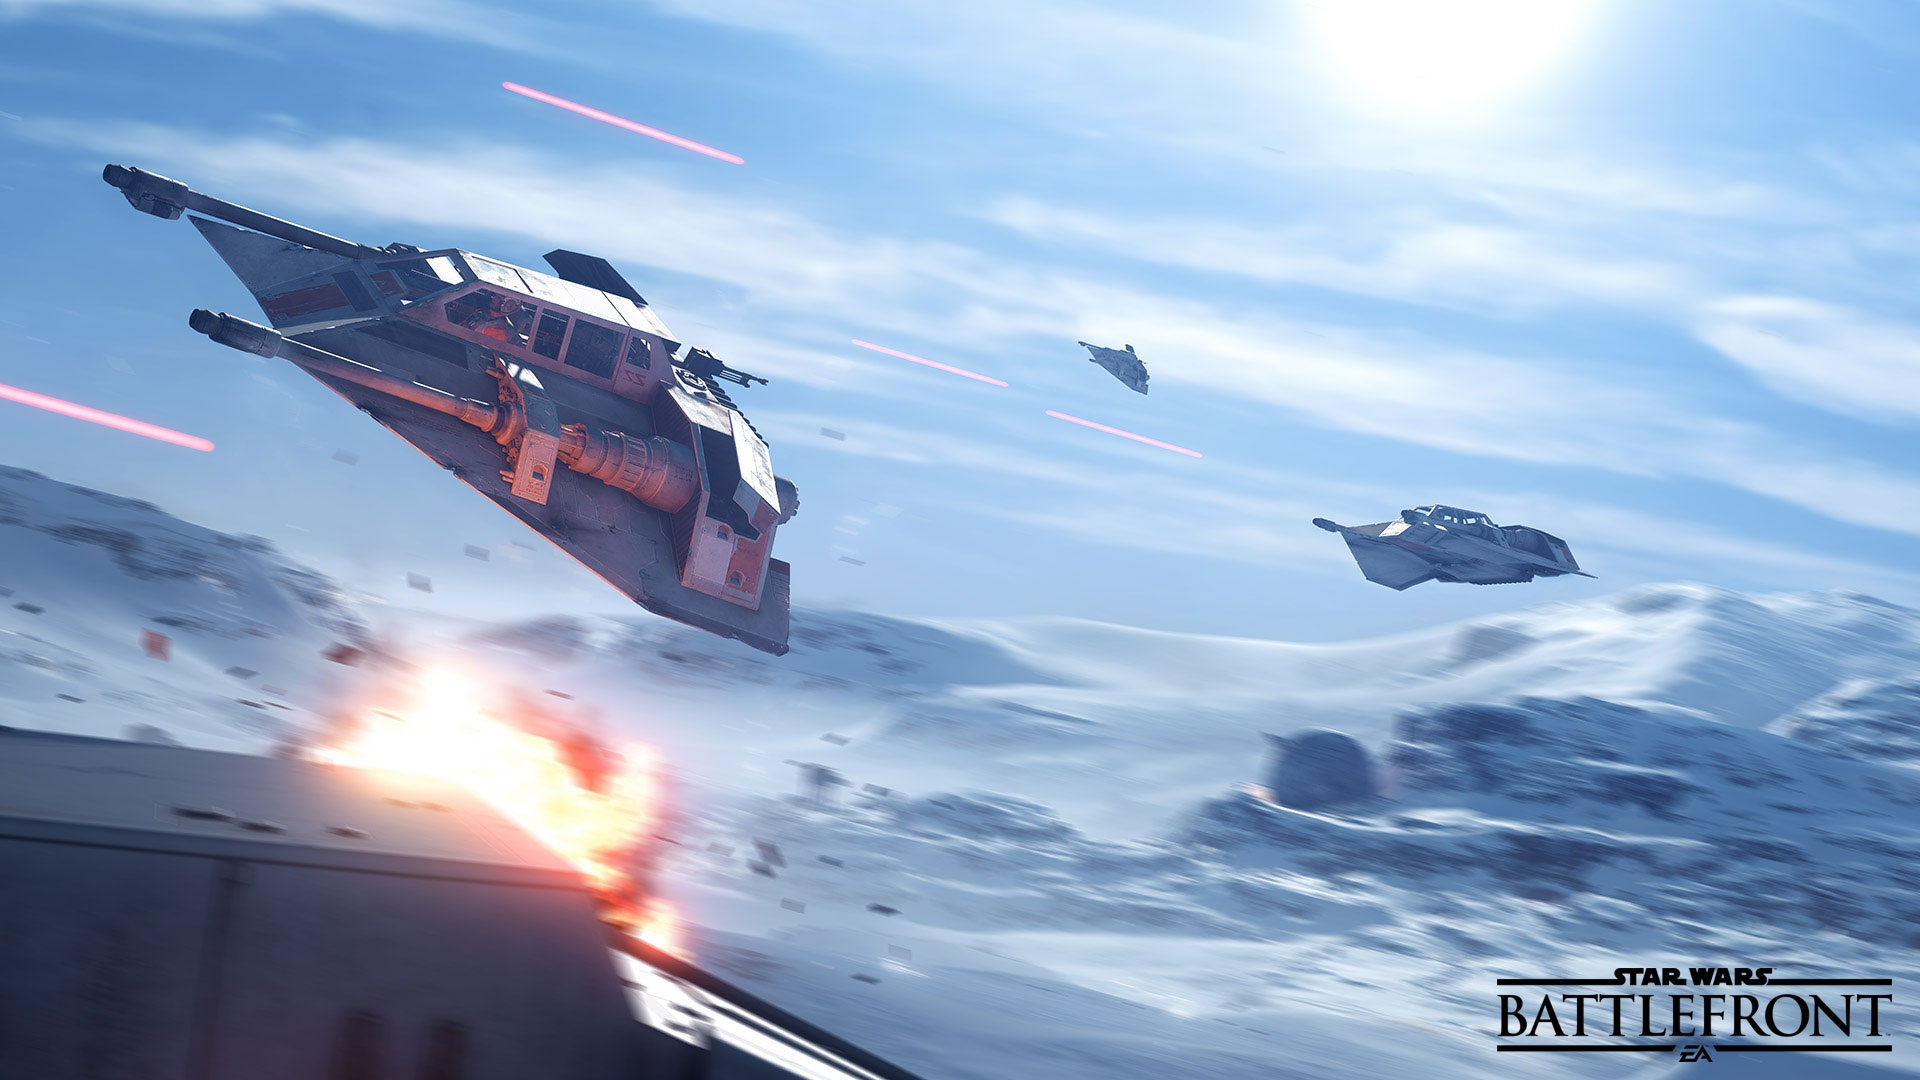 Star Wars Battlefront Snowspeeder